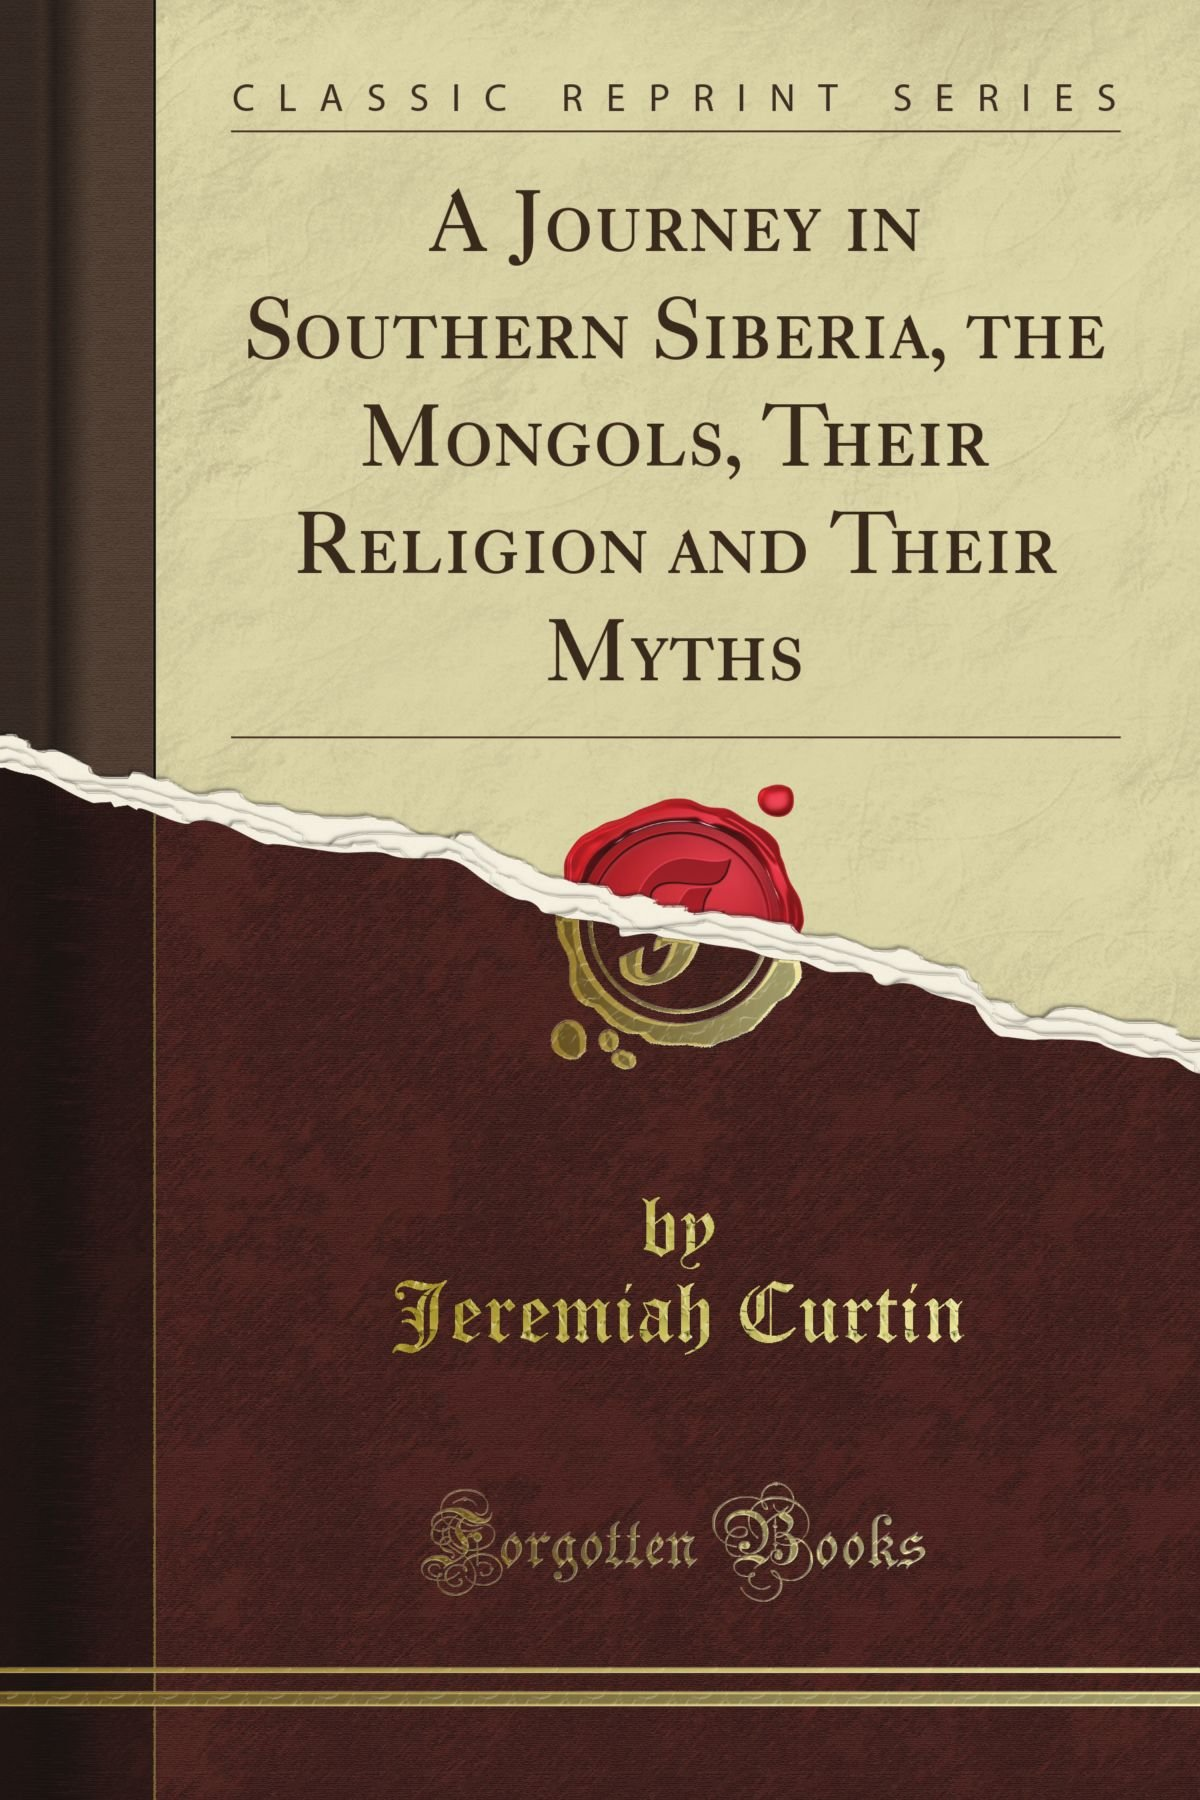 A journey in Southern Siberia,: The Mongols, their religion and their myths